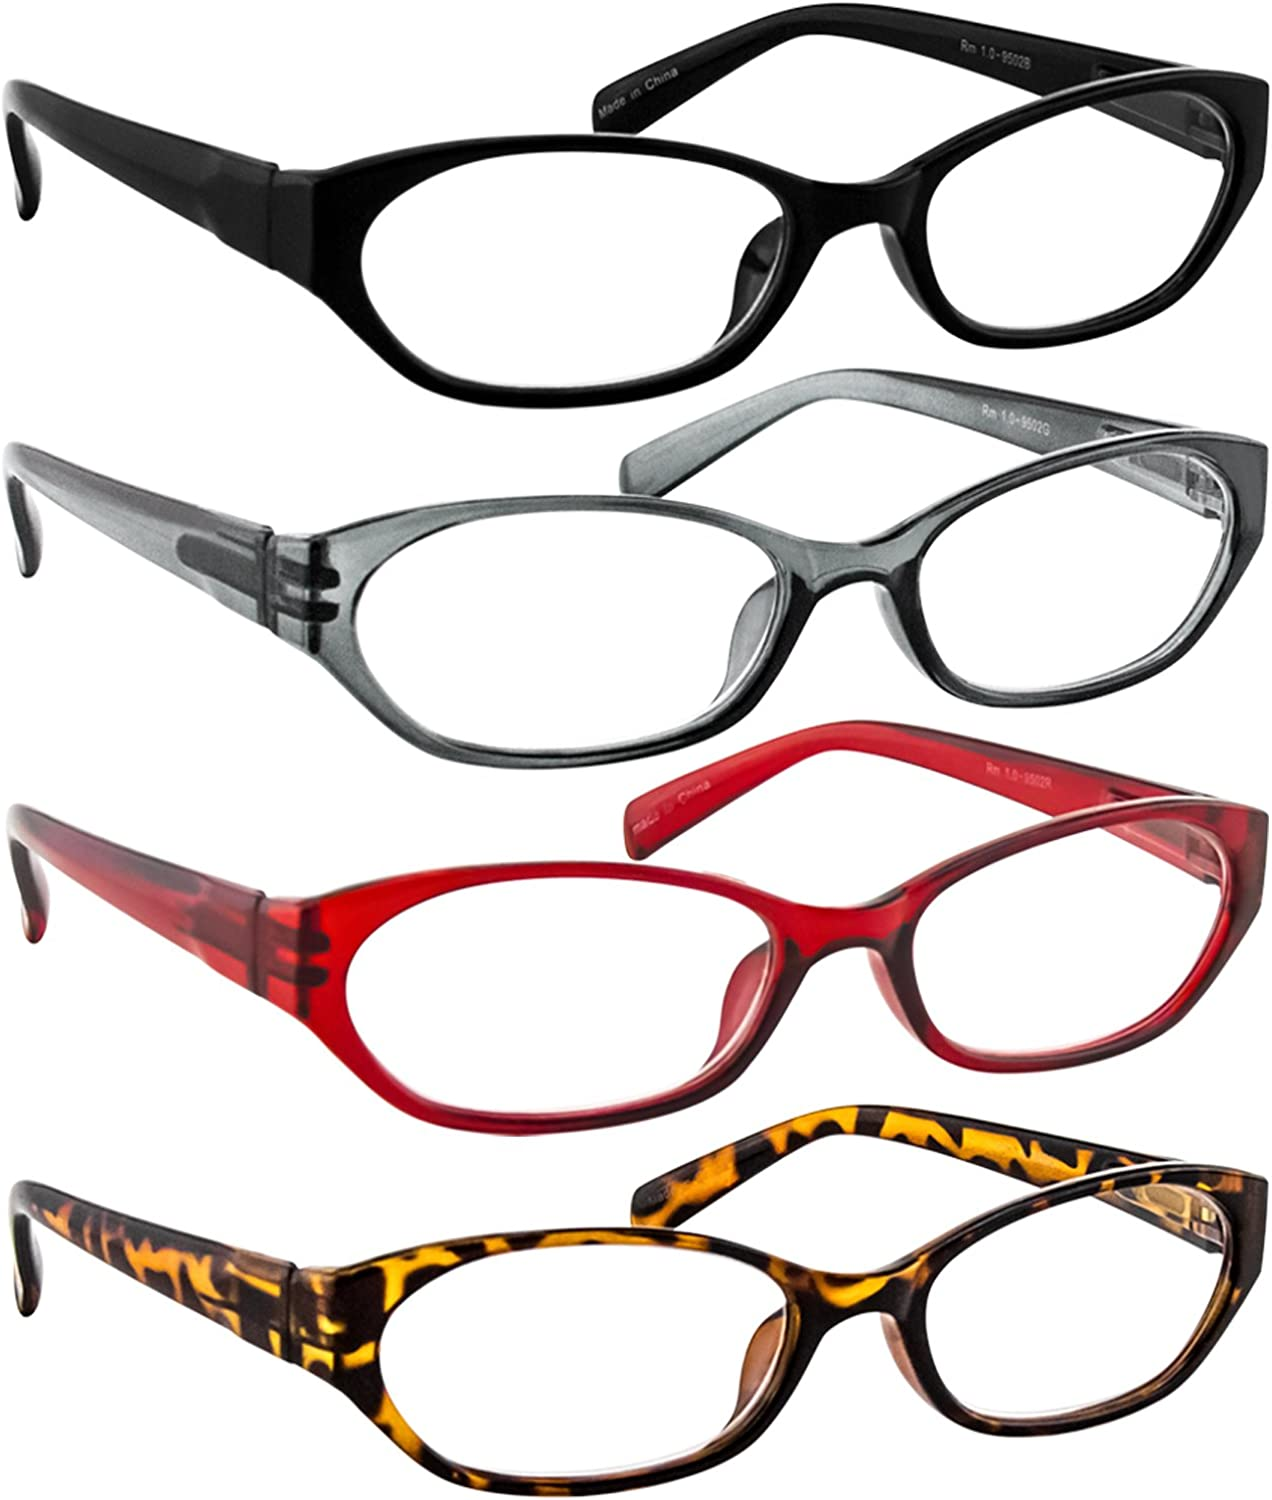 F502 Reading Glasses Women - Spring Hinge and Dura-Tight Screws Multi Colors Options